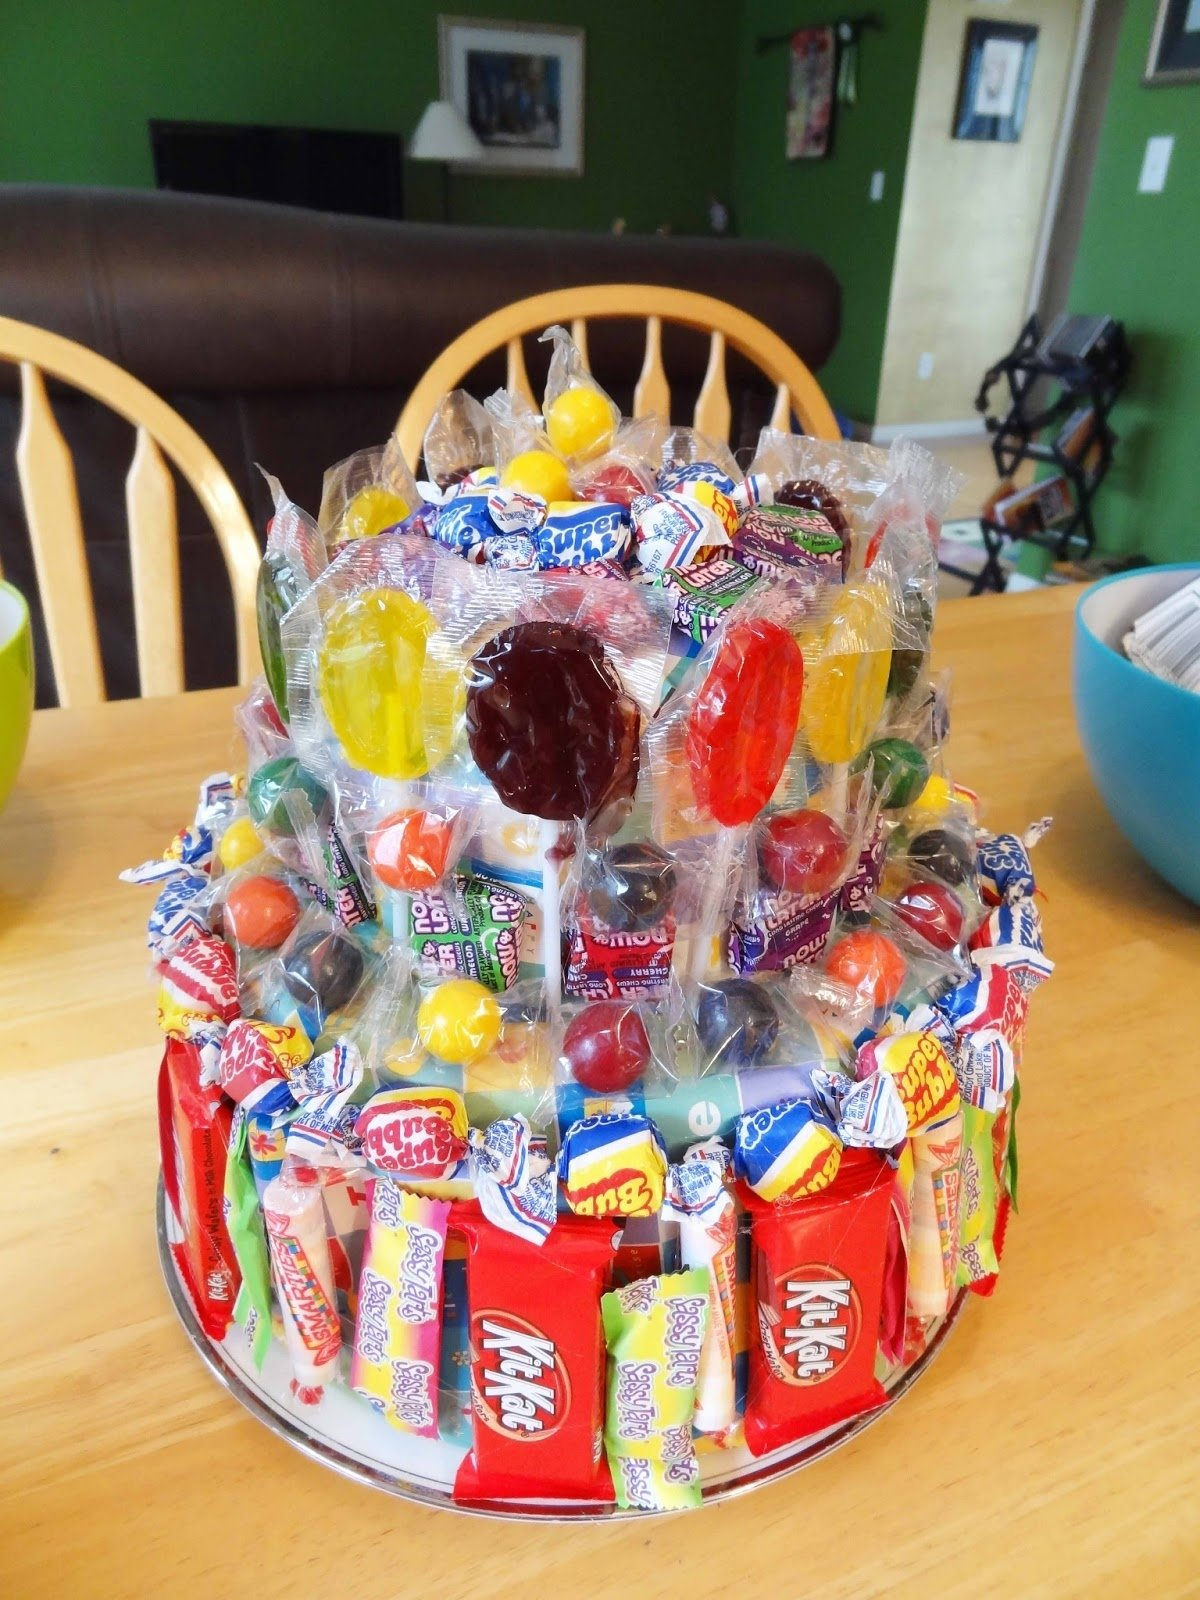 10 Perfect Birthday Ideas For 14 Year Olds birthday party ideas 14 year old image inspiration of cake and 1 2021